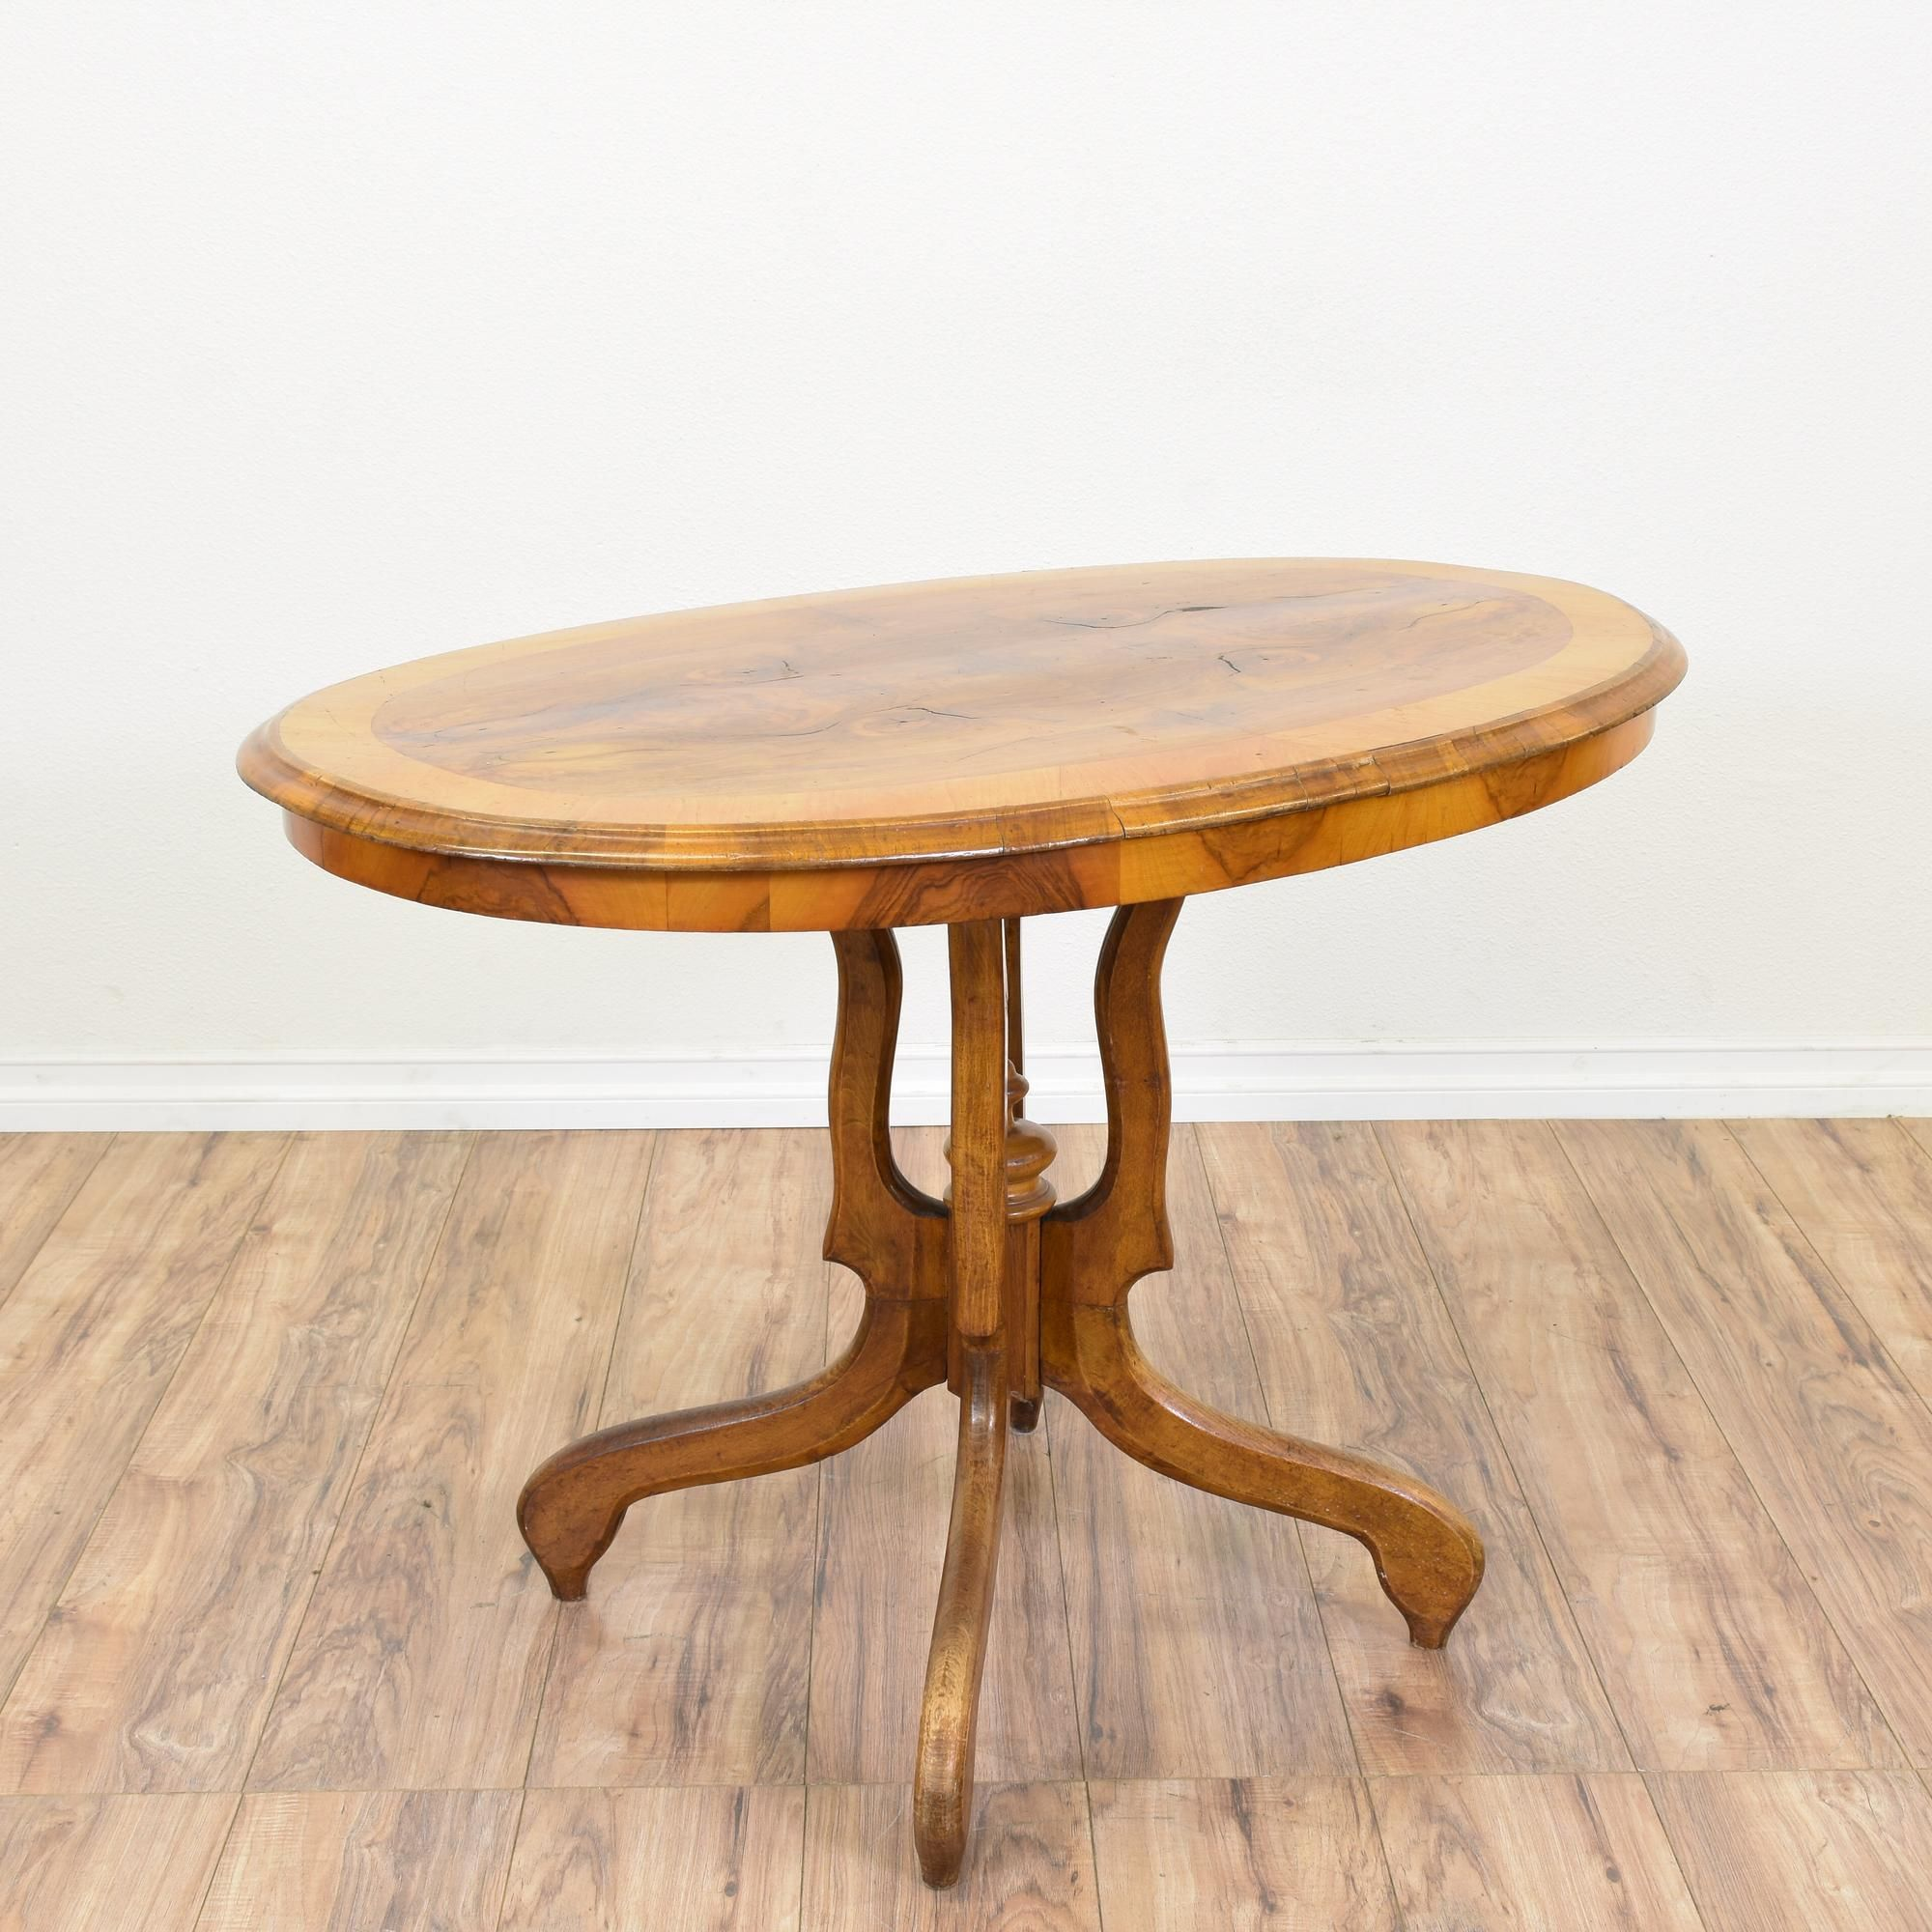 this antique table is featured in a solid wood with a glossy oak